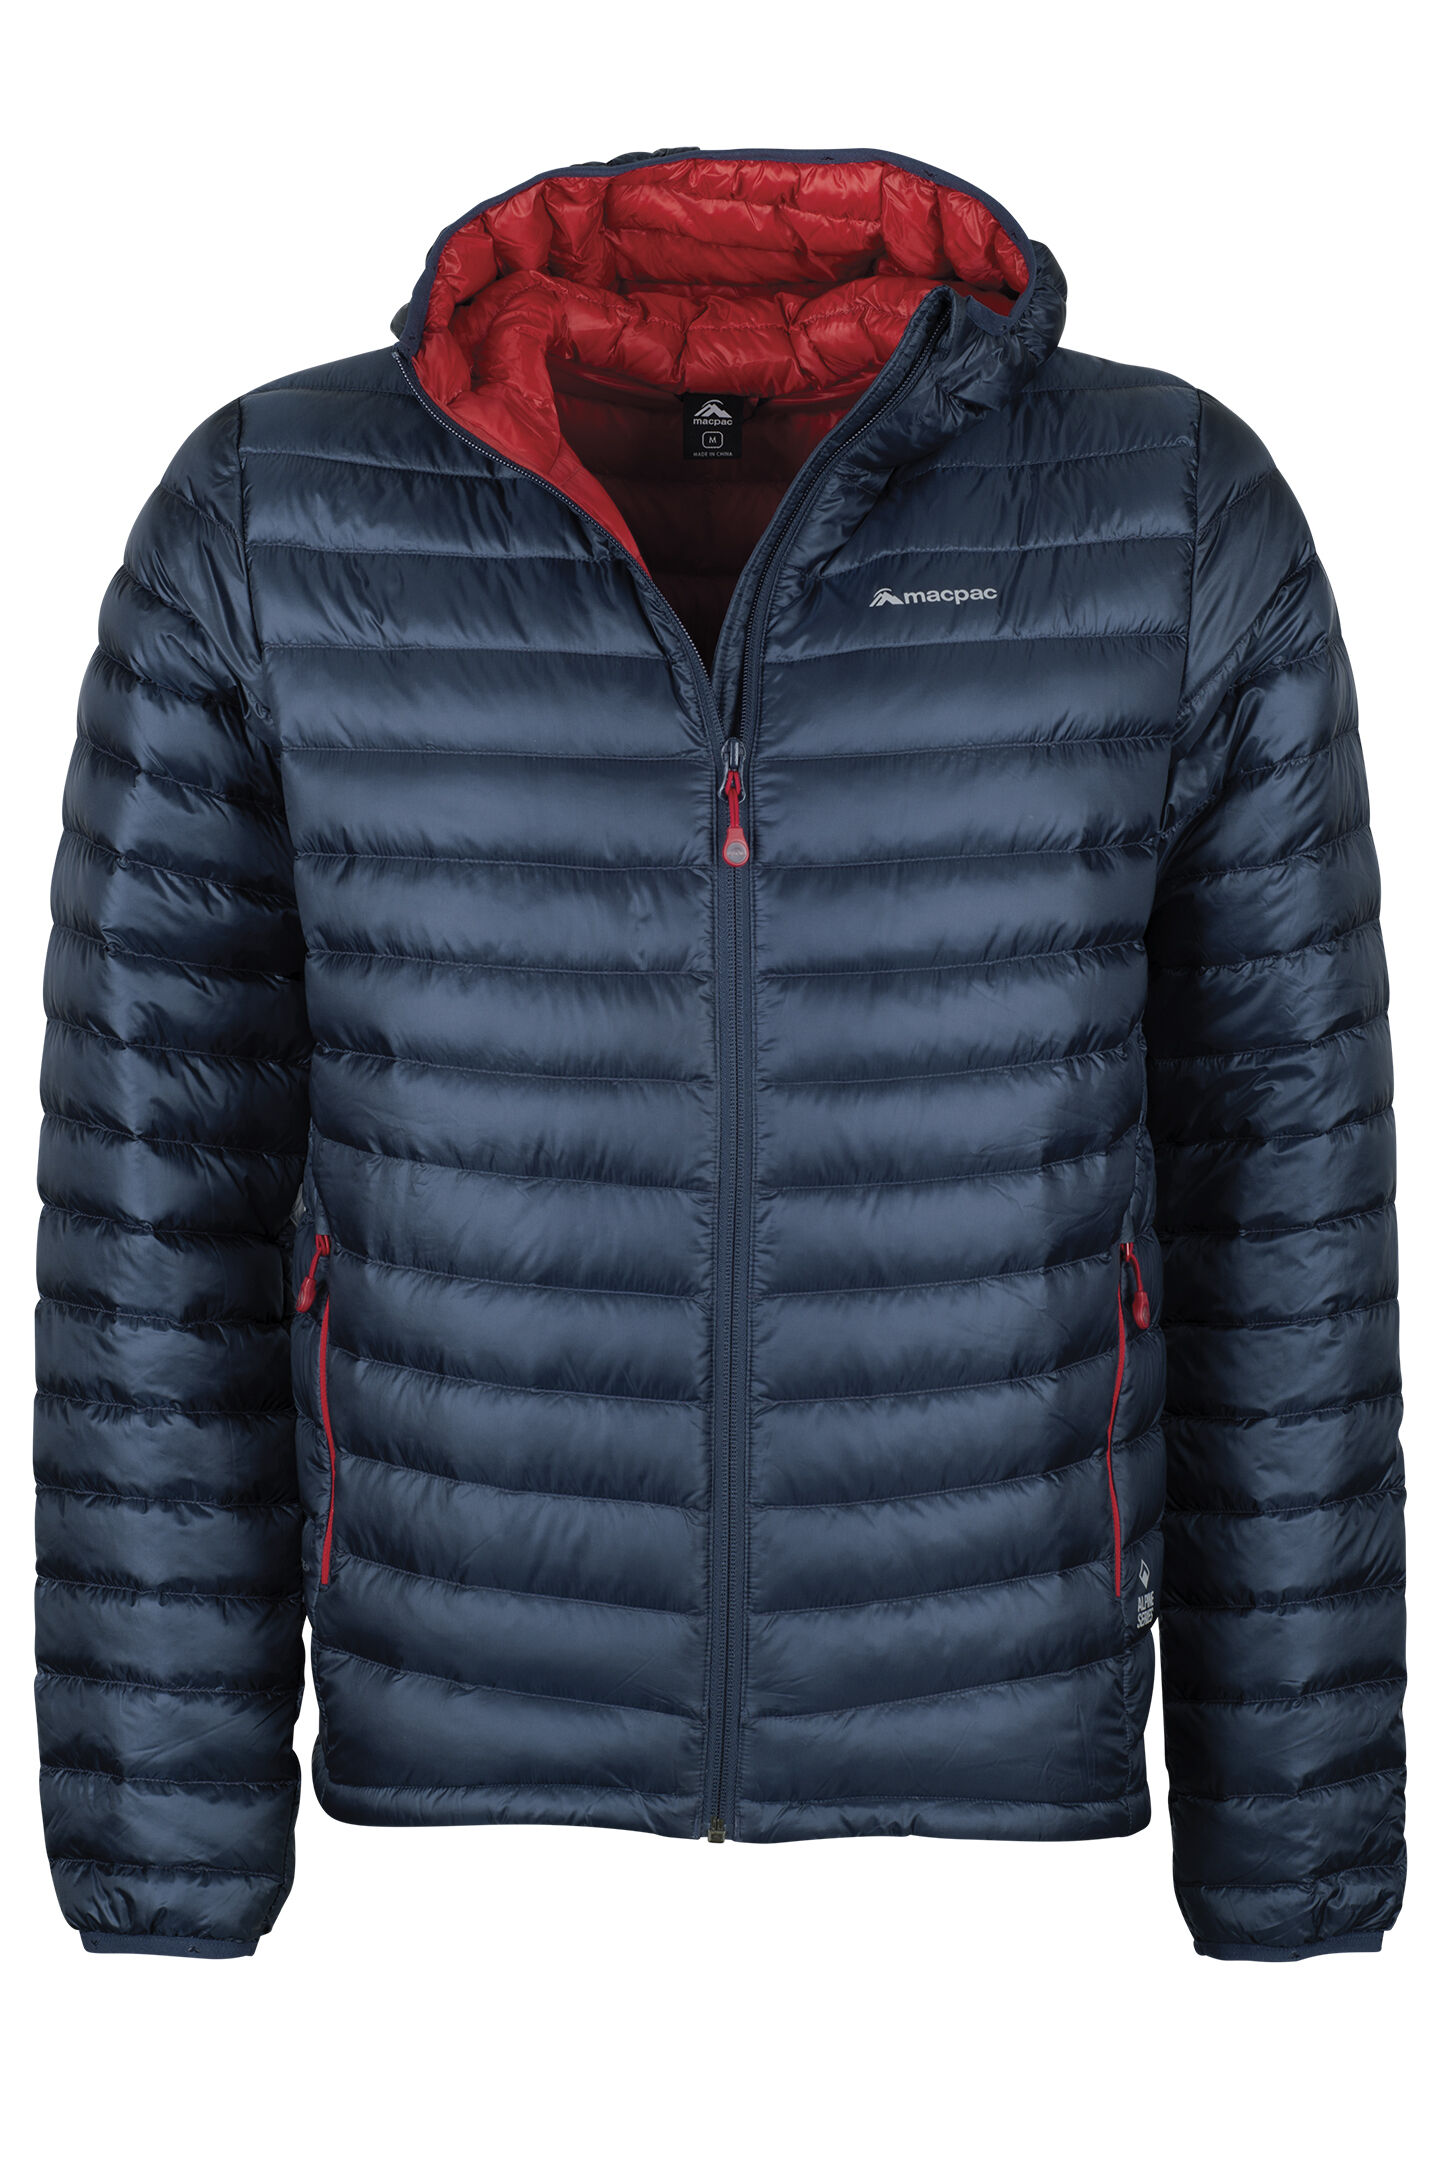 Adidas Terrex Hooded Light Down Jacket – LumberJac